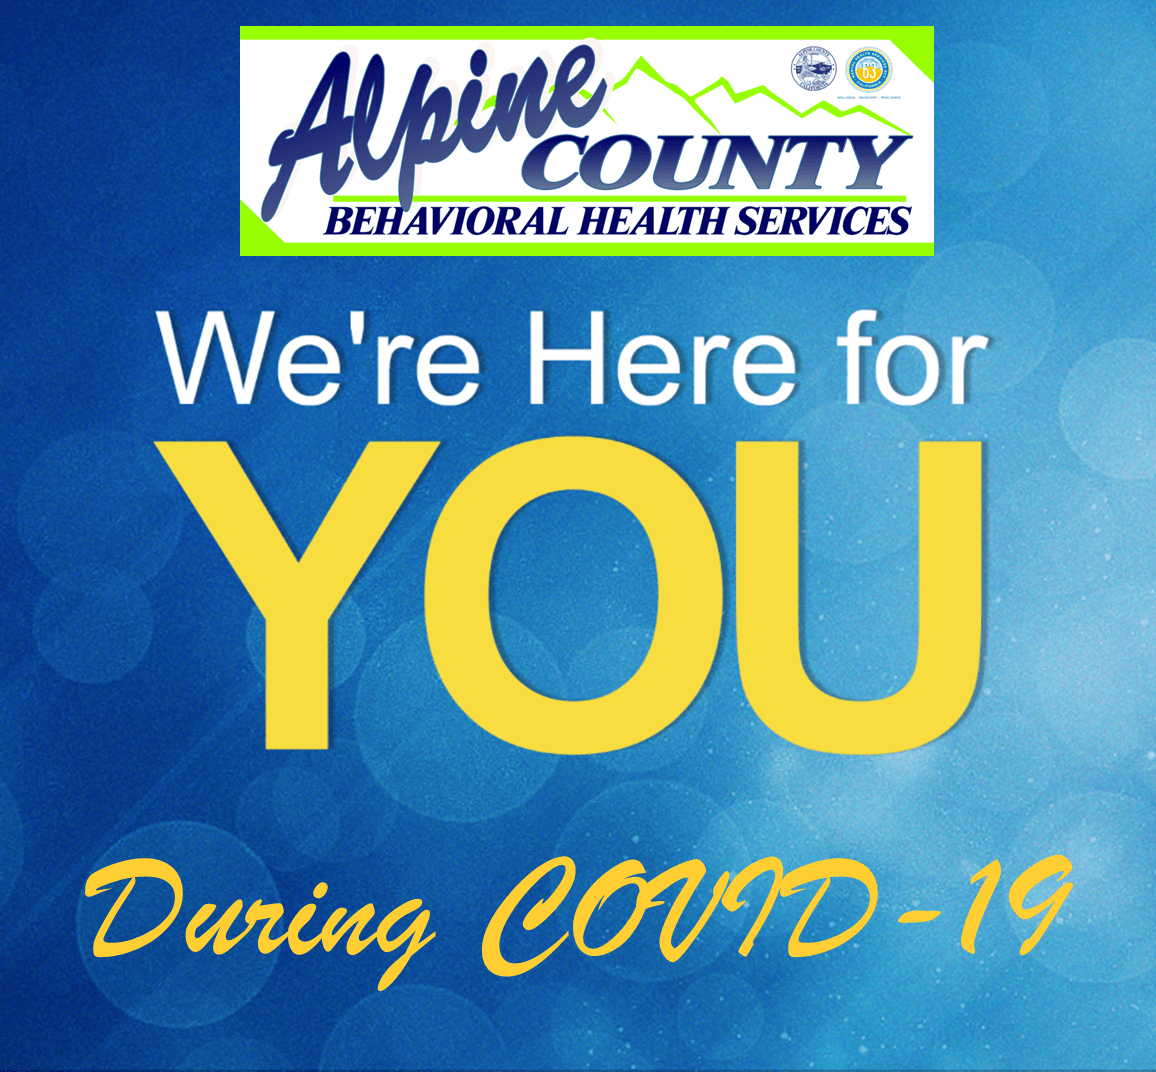 We're Here For You During COVID-19 Opens in new window